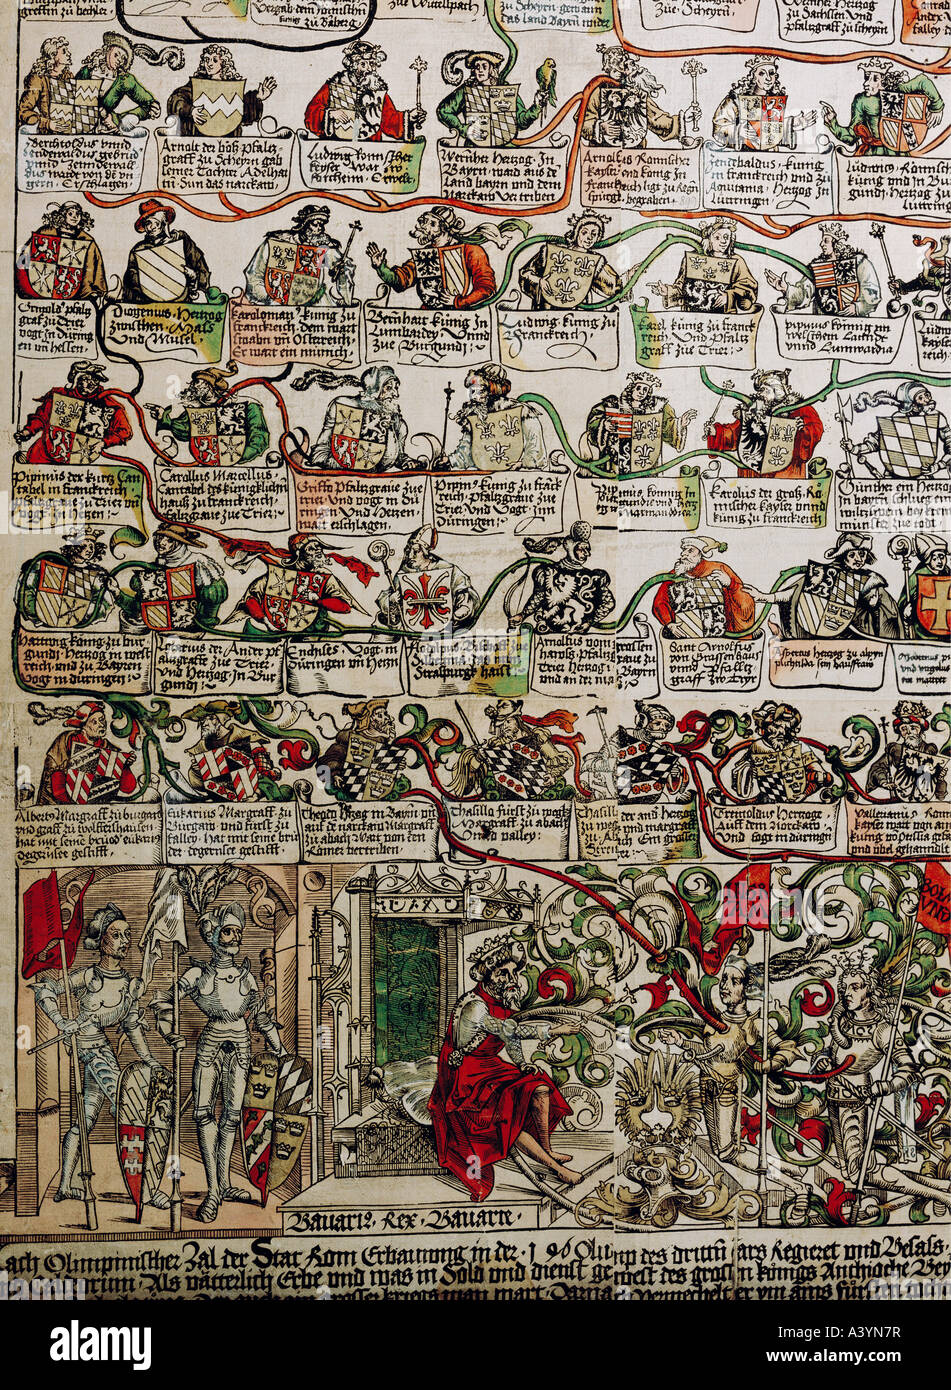 middle ages, people, genealogy of Wittelsbach dynasty, colour woodcuts, assembled, early 16th century, Bavarian - Stock Image